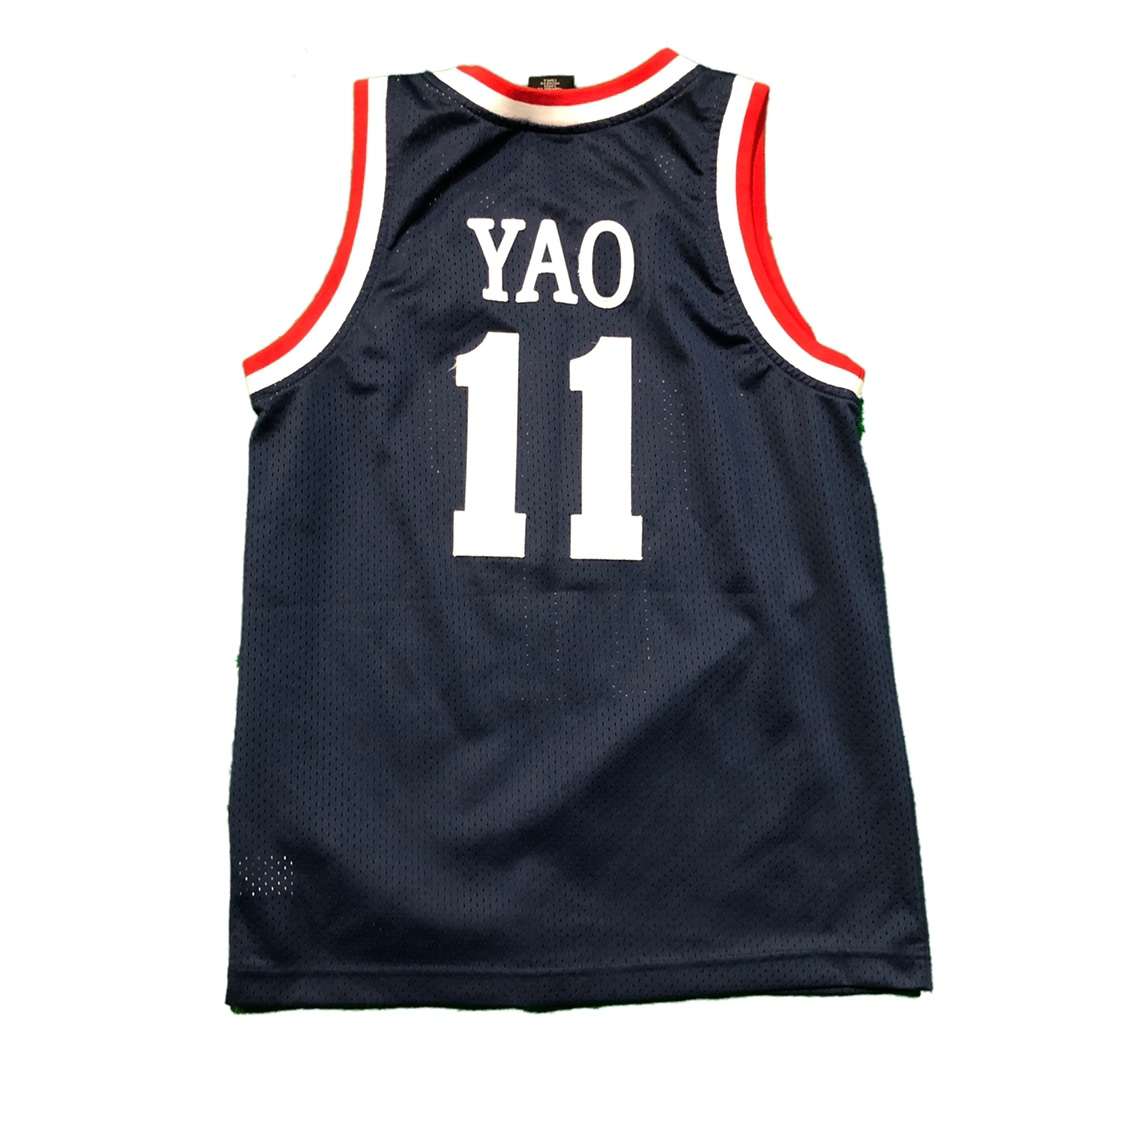 competitive price bf2c1 2c2d0 90s Nike Yao Ming Houston Rockets jersey size youth... - Depop